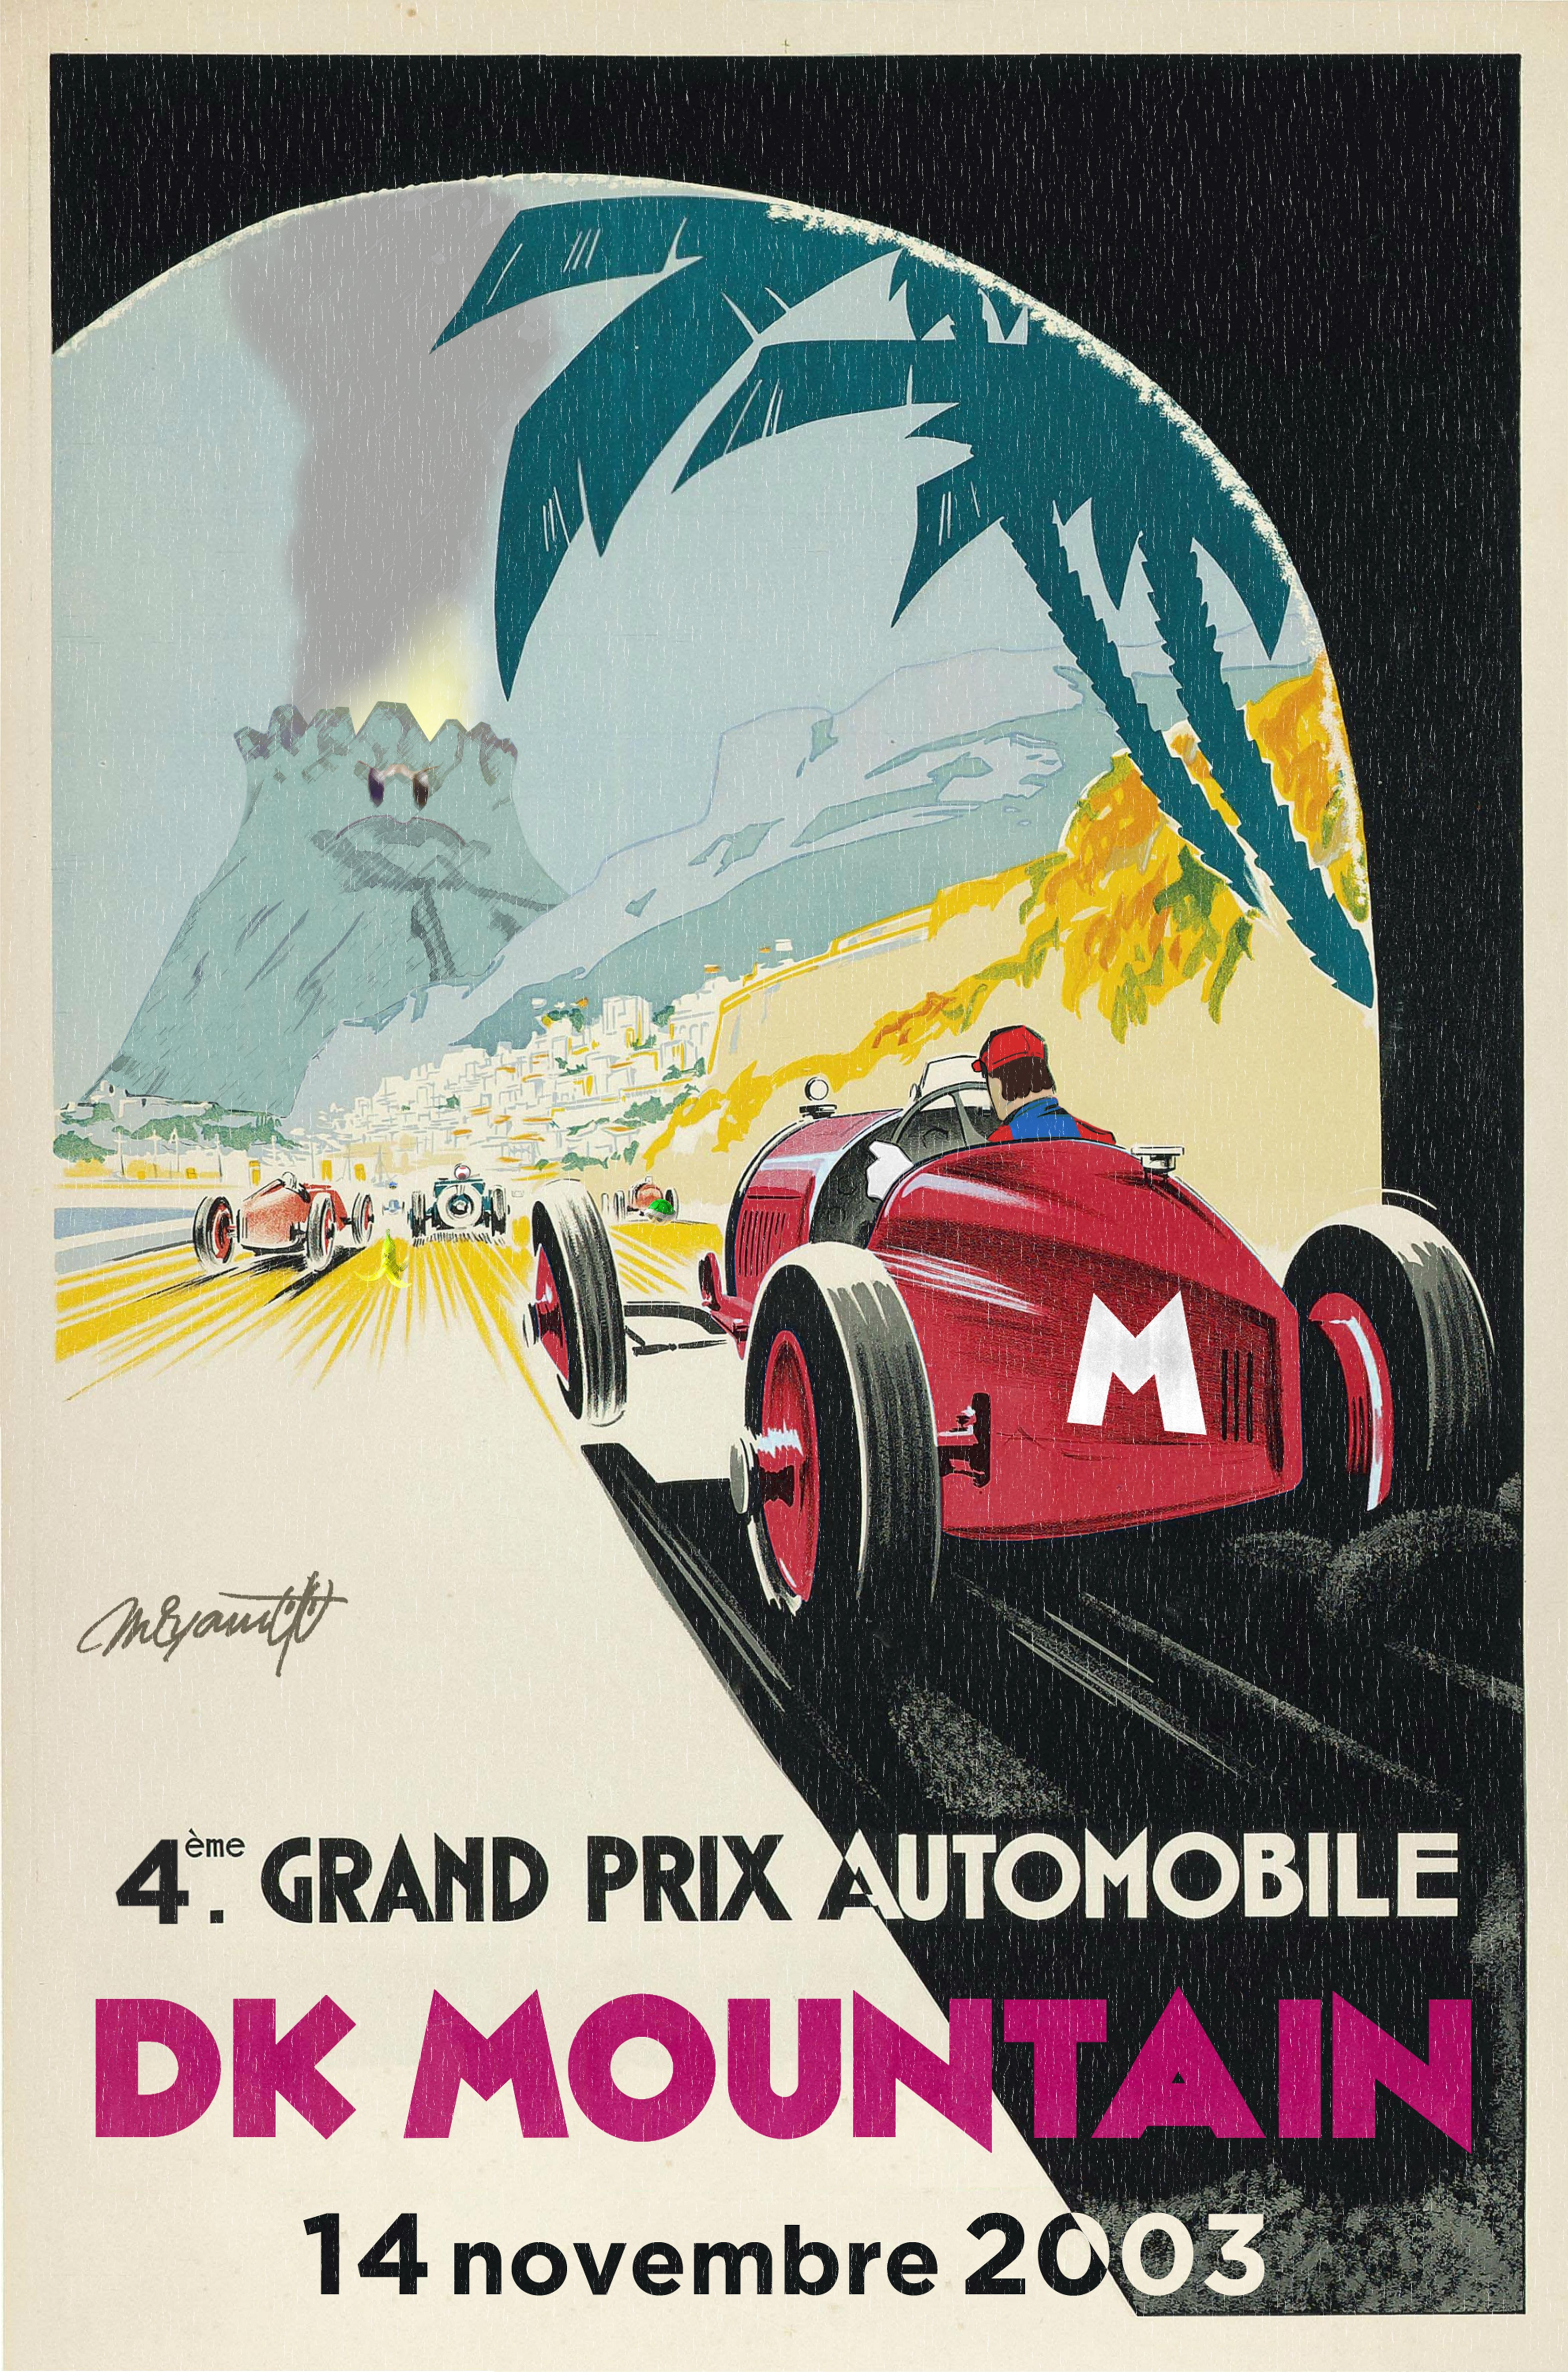 I Took An Old Monaco Racing Poster And Made It Mario Kart Themed Http Ift Tt 2ji9fun Vintage Racing Poster Grand Prix Posters Racing Posters